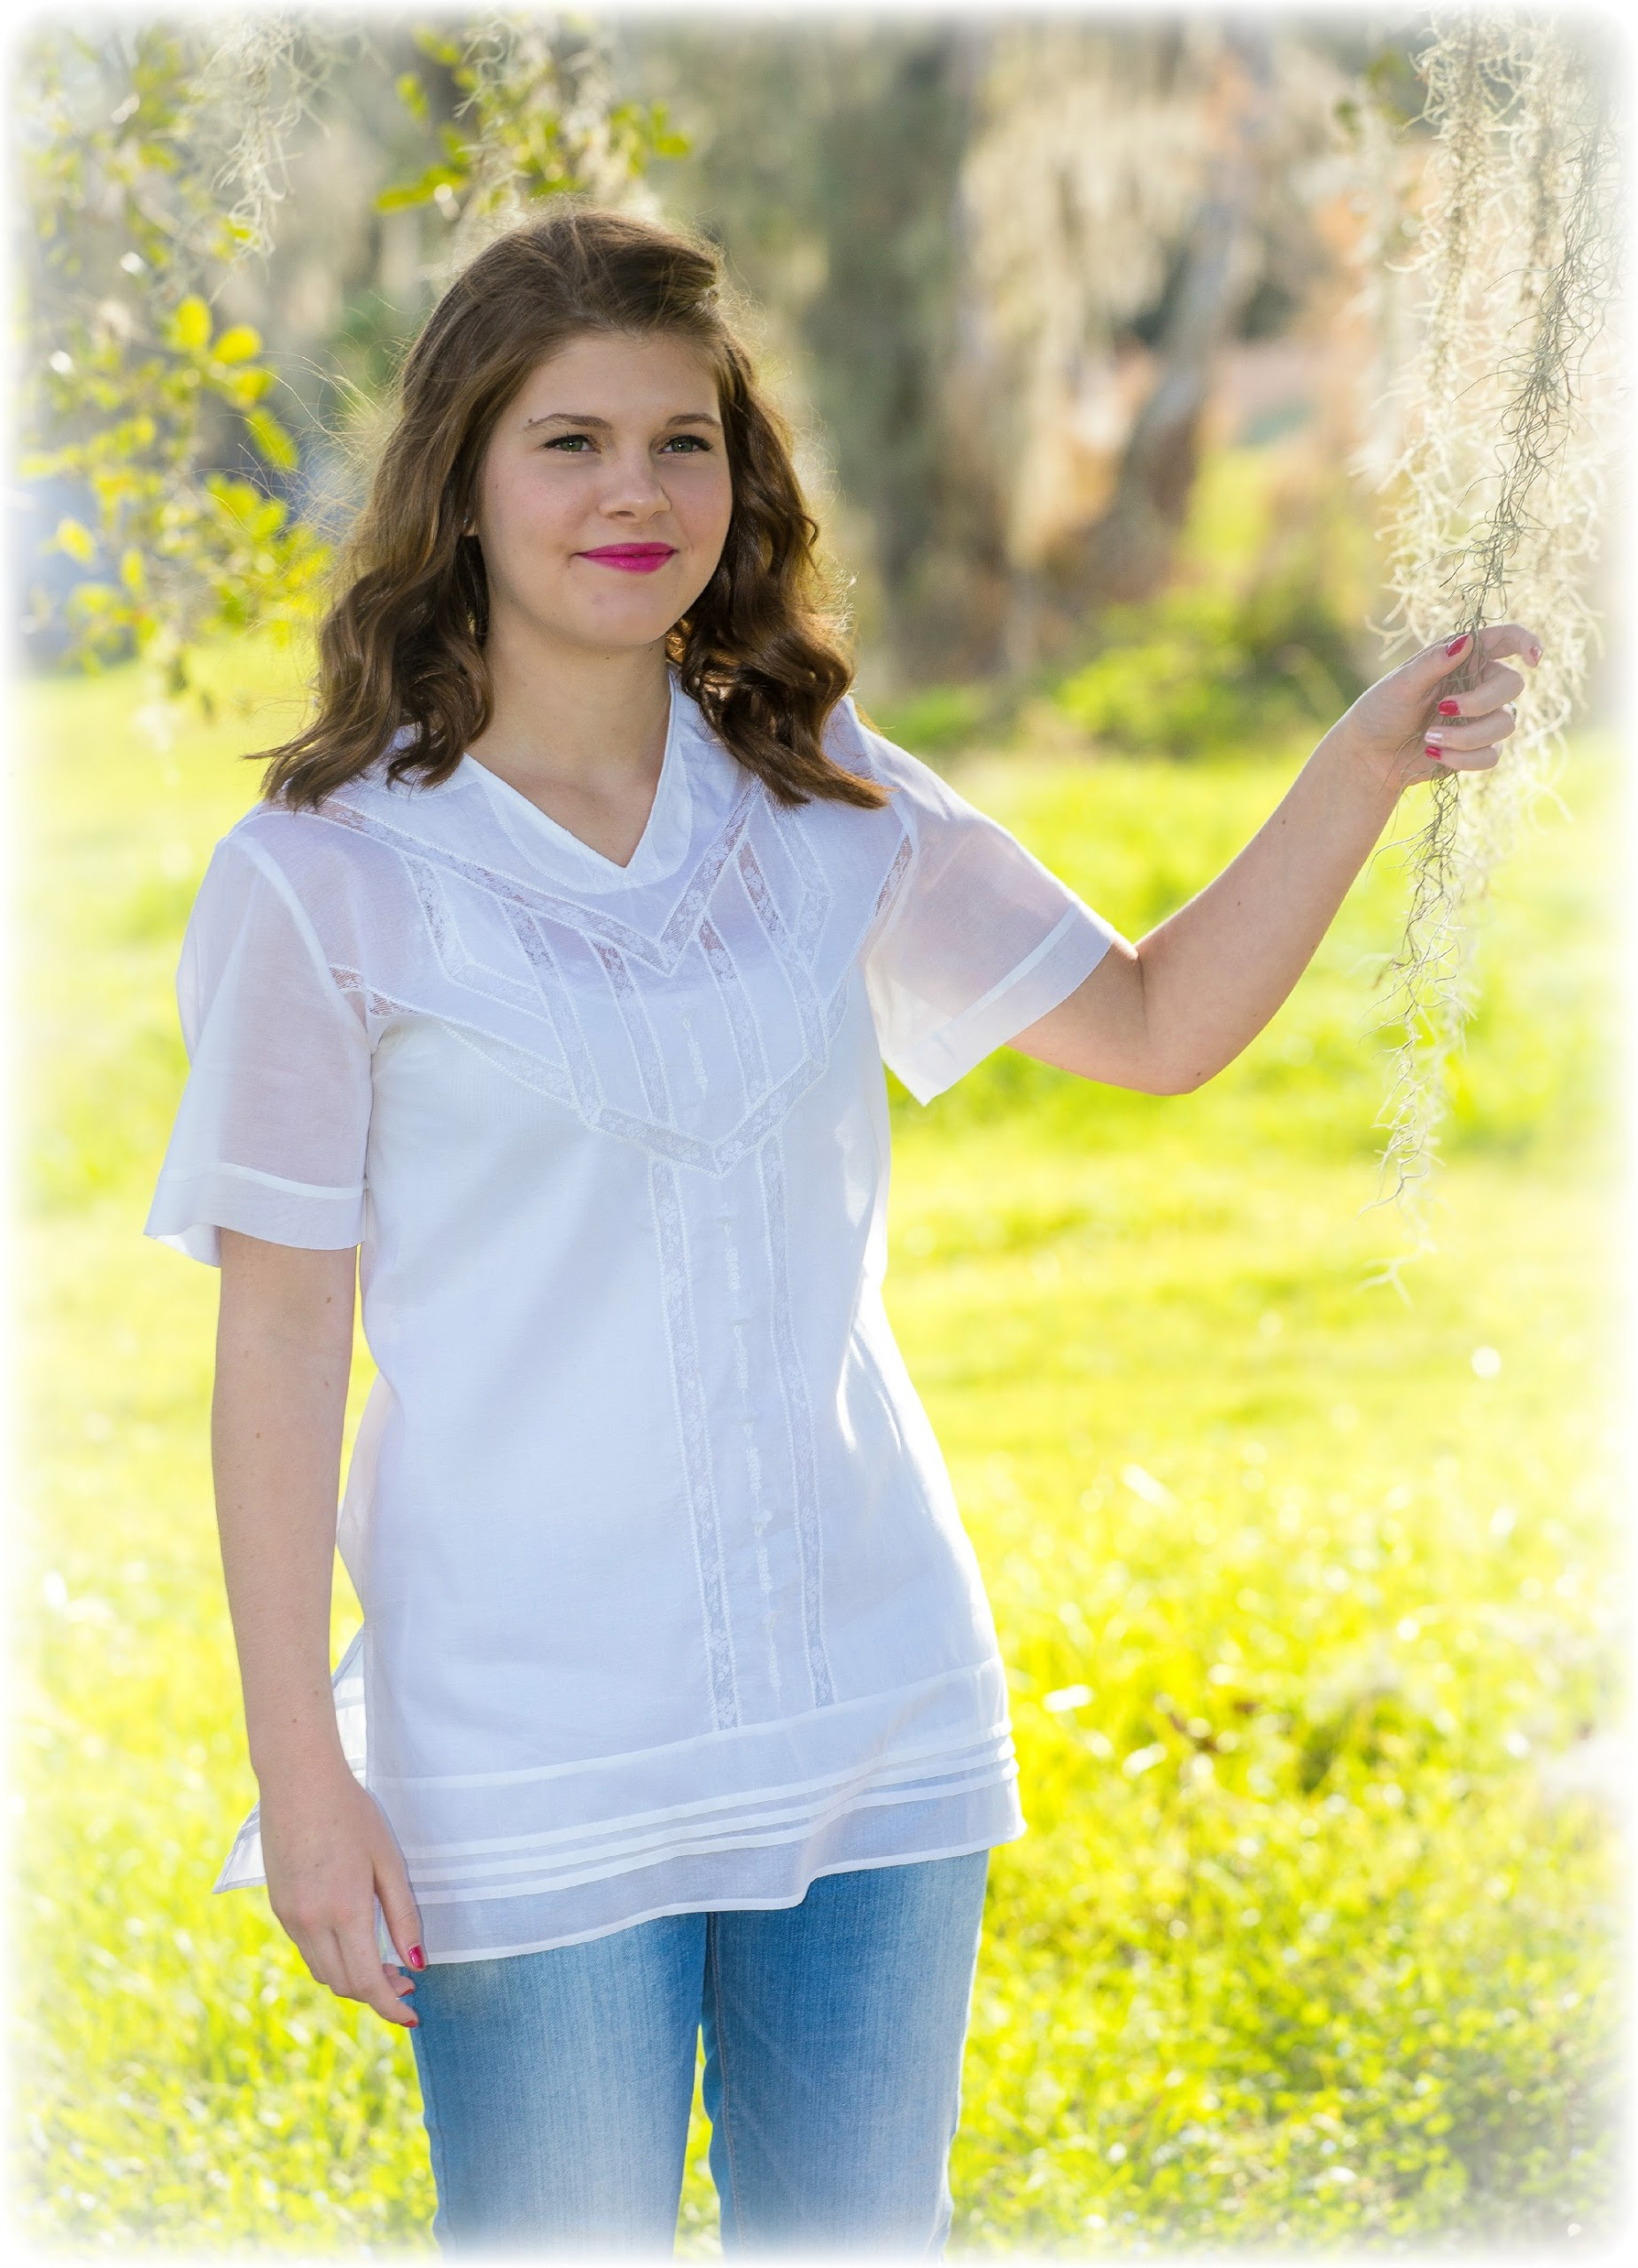 Girl Modeling Embroidered White Top